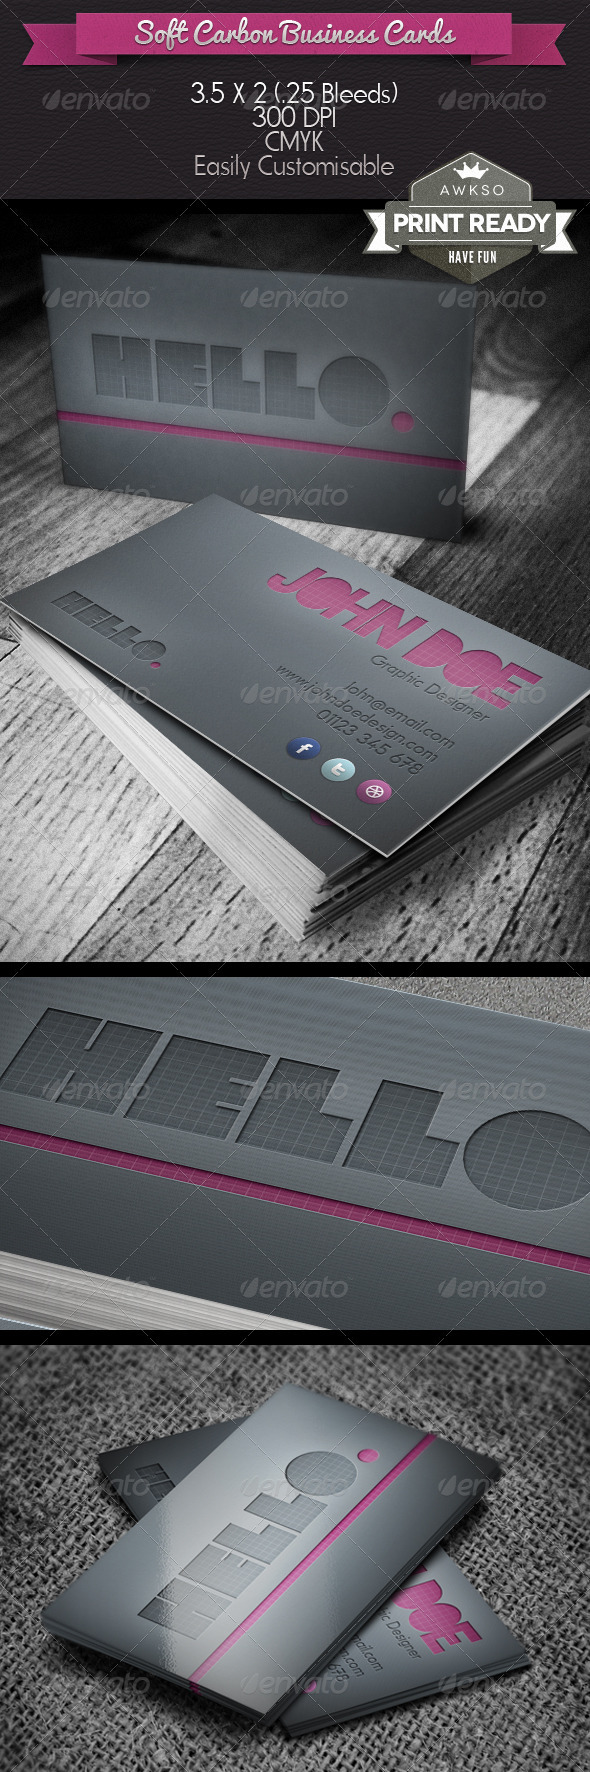 Soft Carbon Business Card - Creative Business Cards